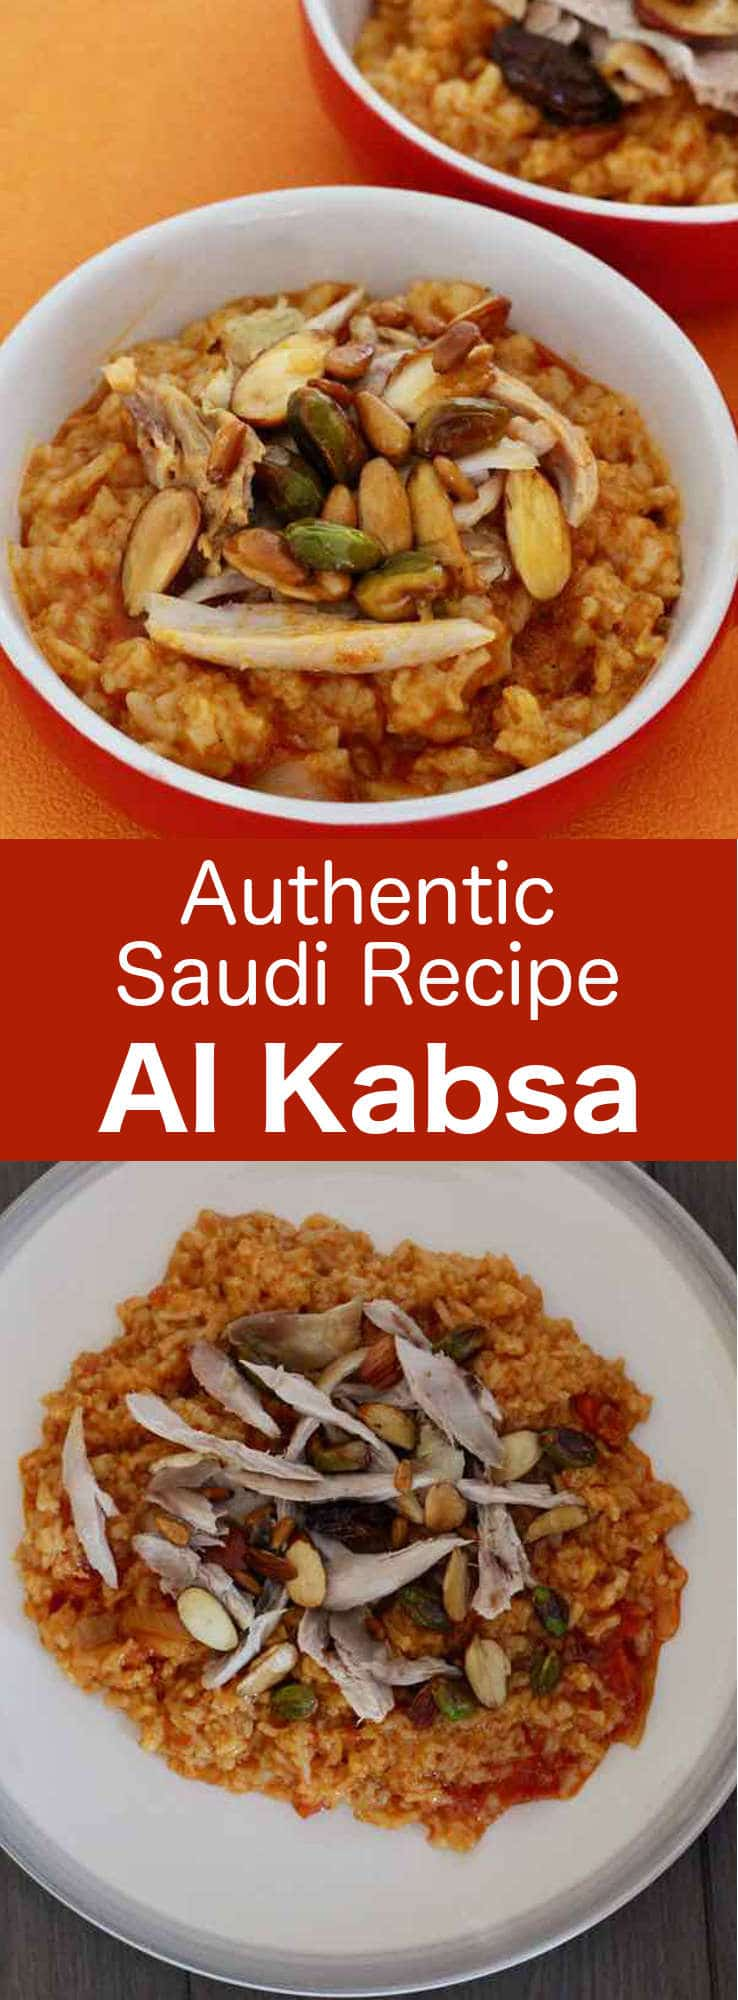 Al Kabsa Authentic And Traditional Saudi Recipe 196 Flavors